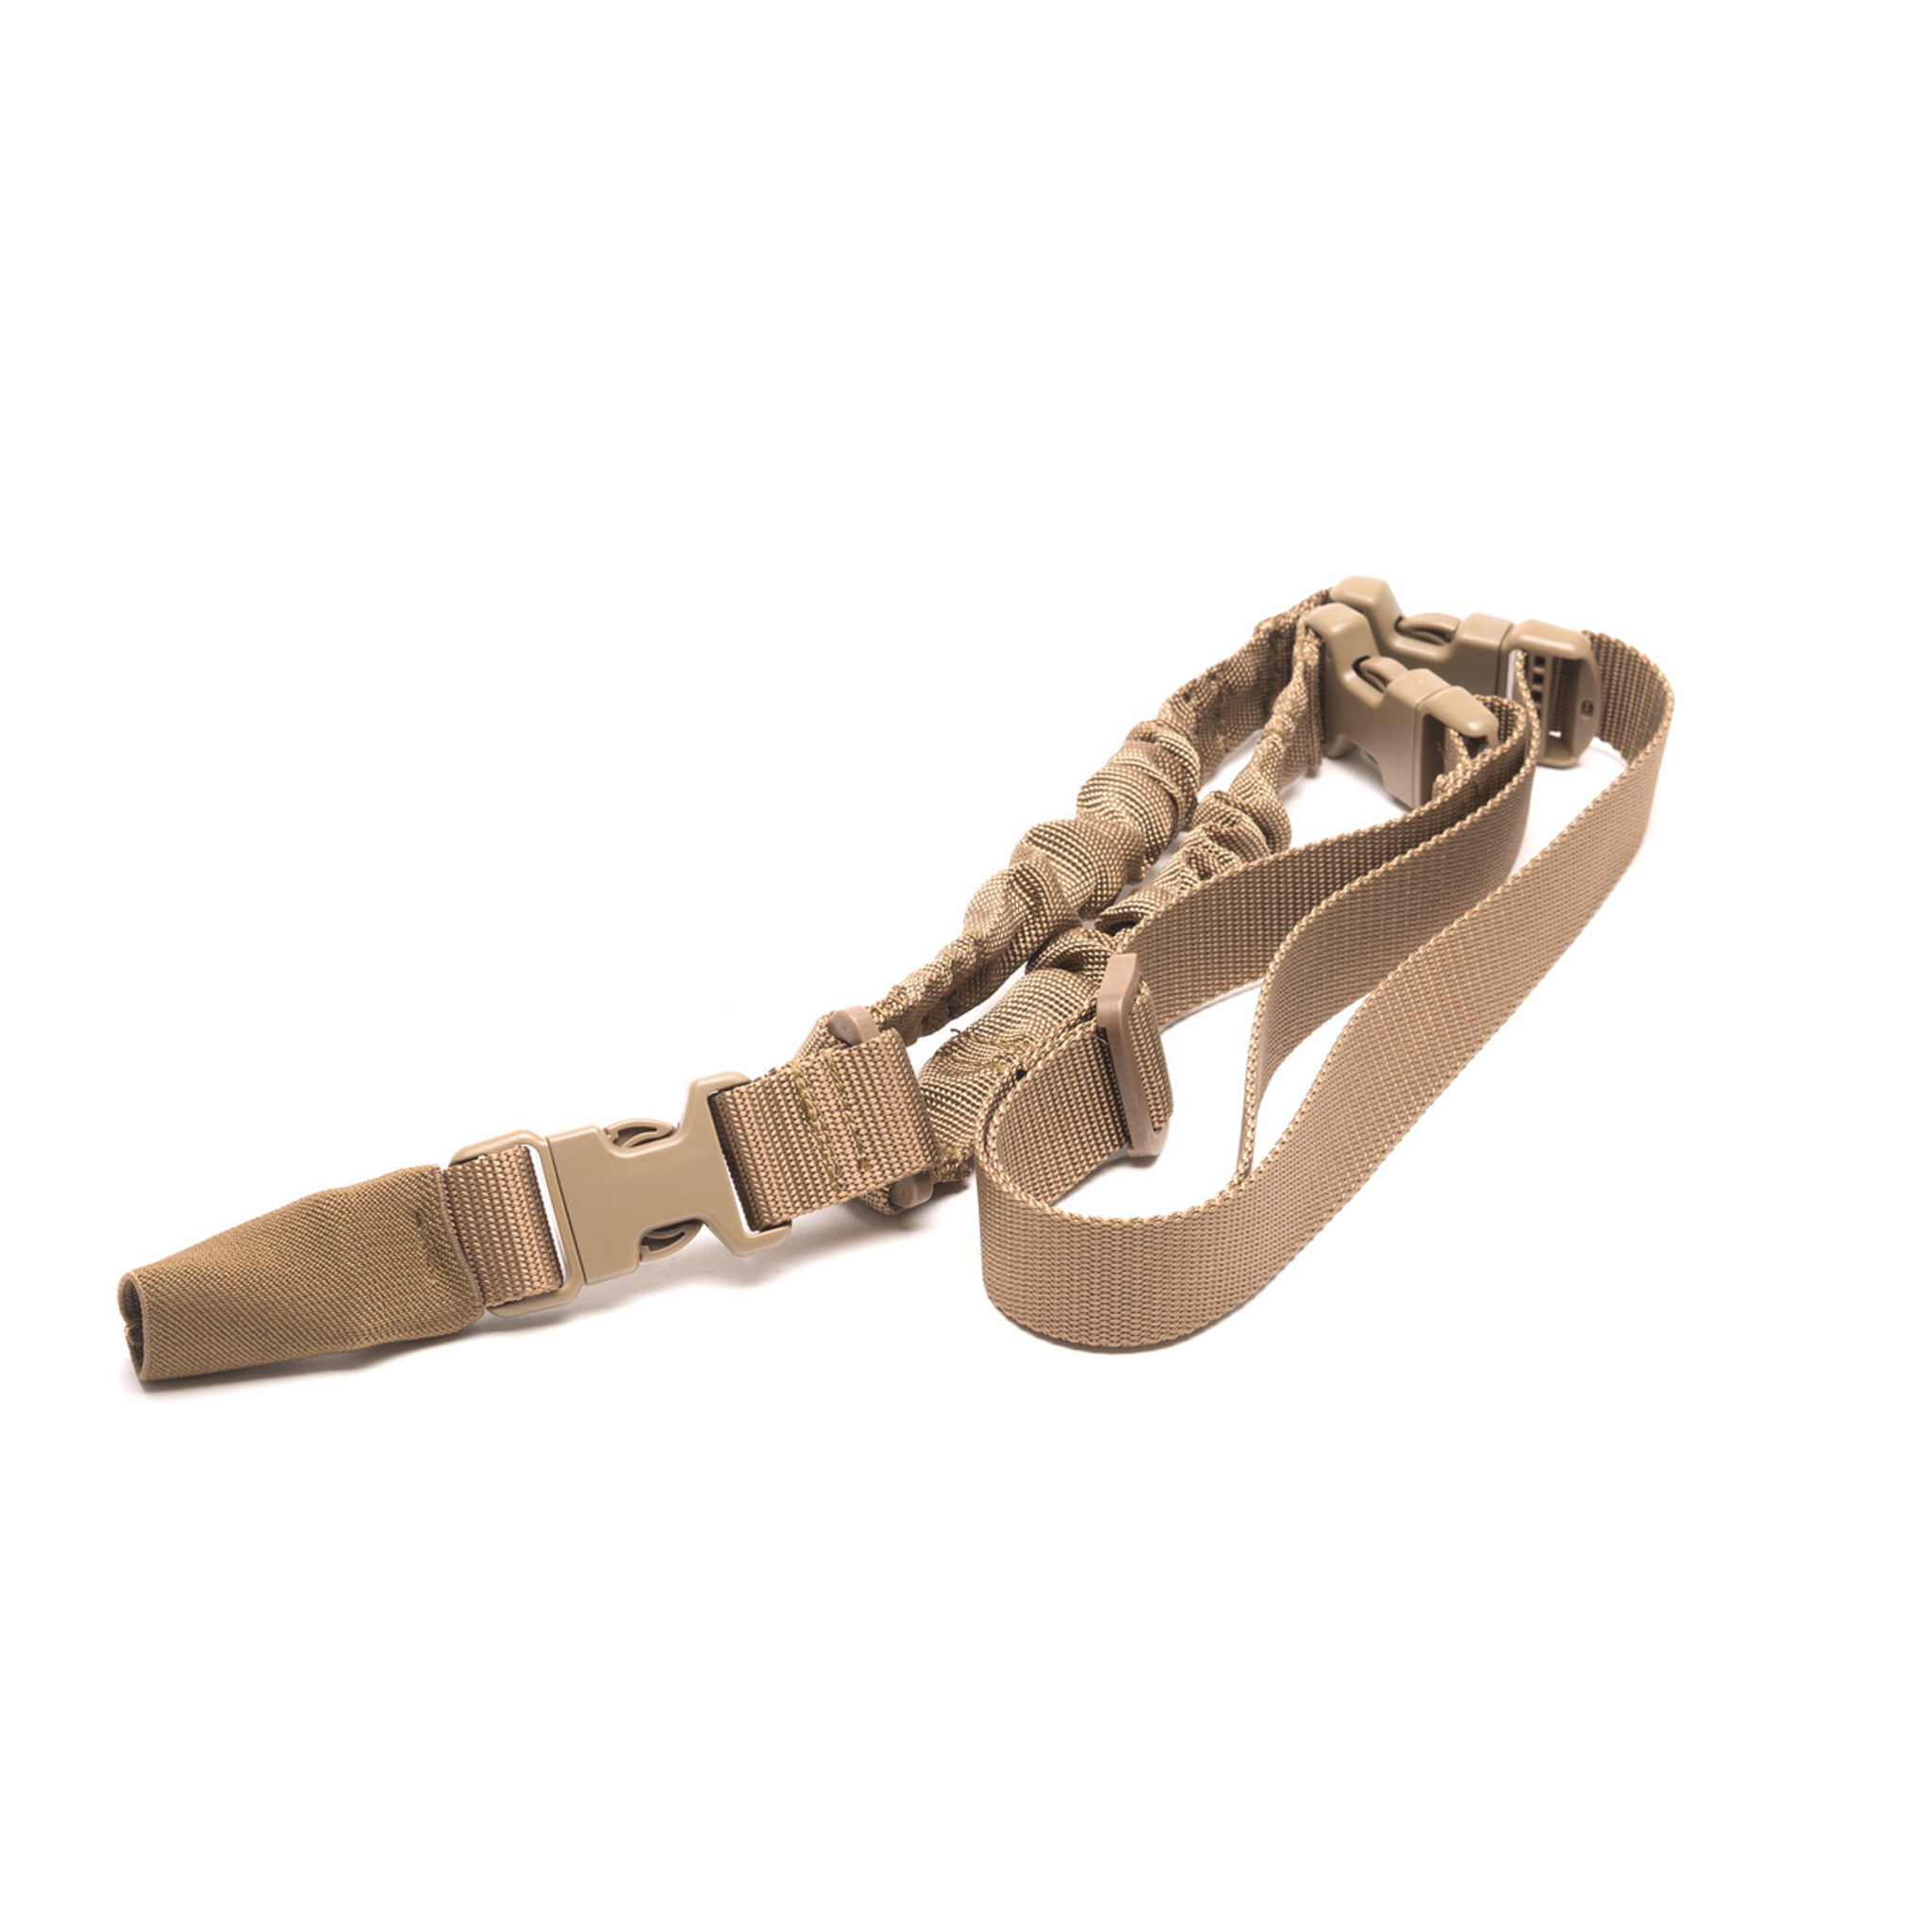 Single-Point Tactical Sling